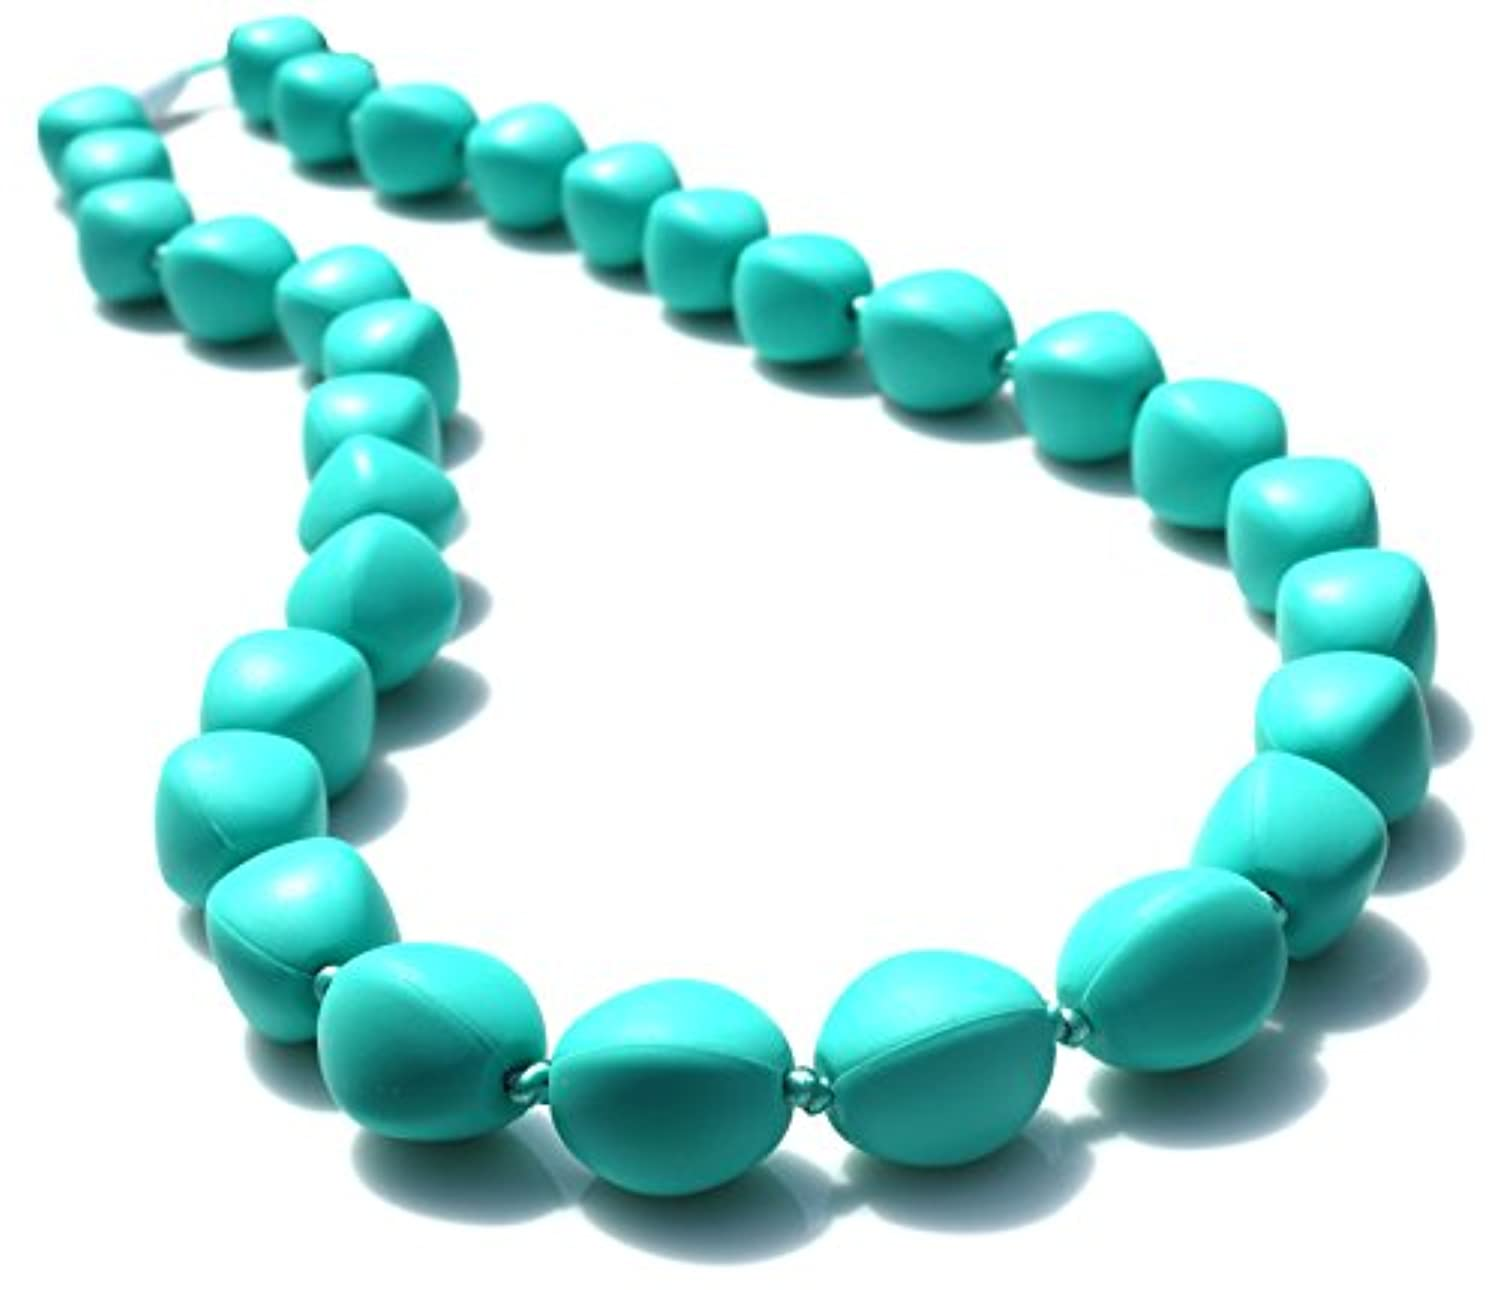 Peacemaker Jewelry Olive Bead Teething Necklace (Turquoise) by Peacemaker Jewelry